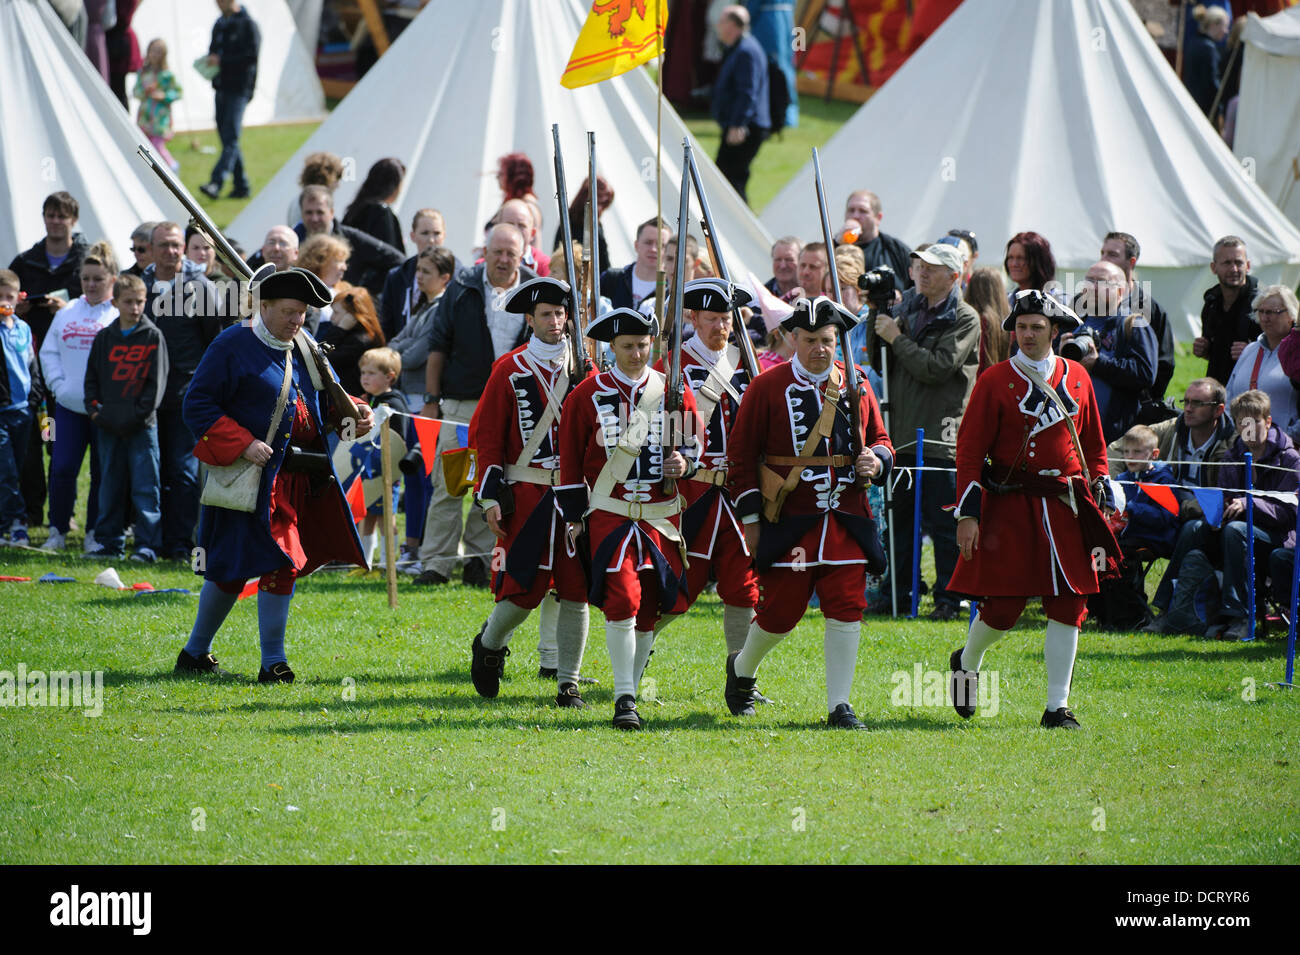 Redcoats march on the Jacobites during a re-enactment at Scotland's Festival of History at Chatelherault South - Stock Image